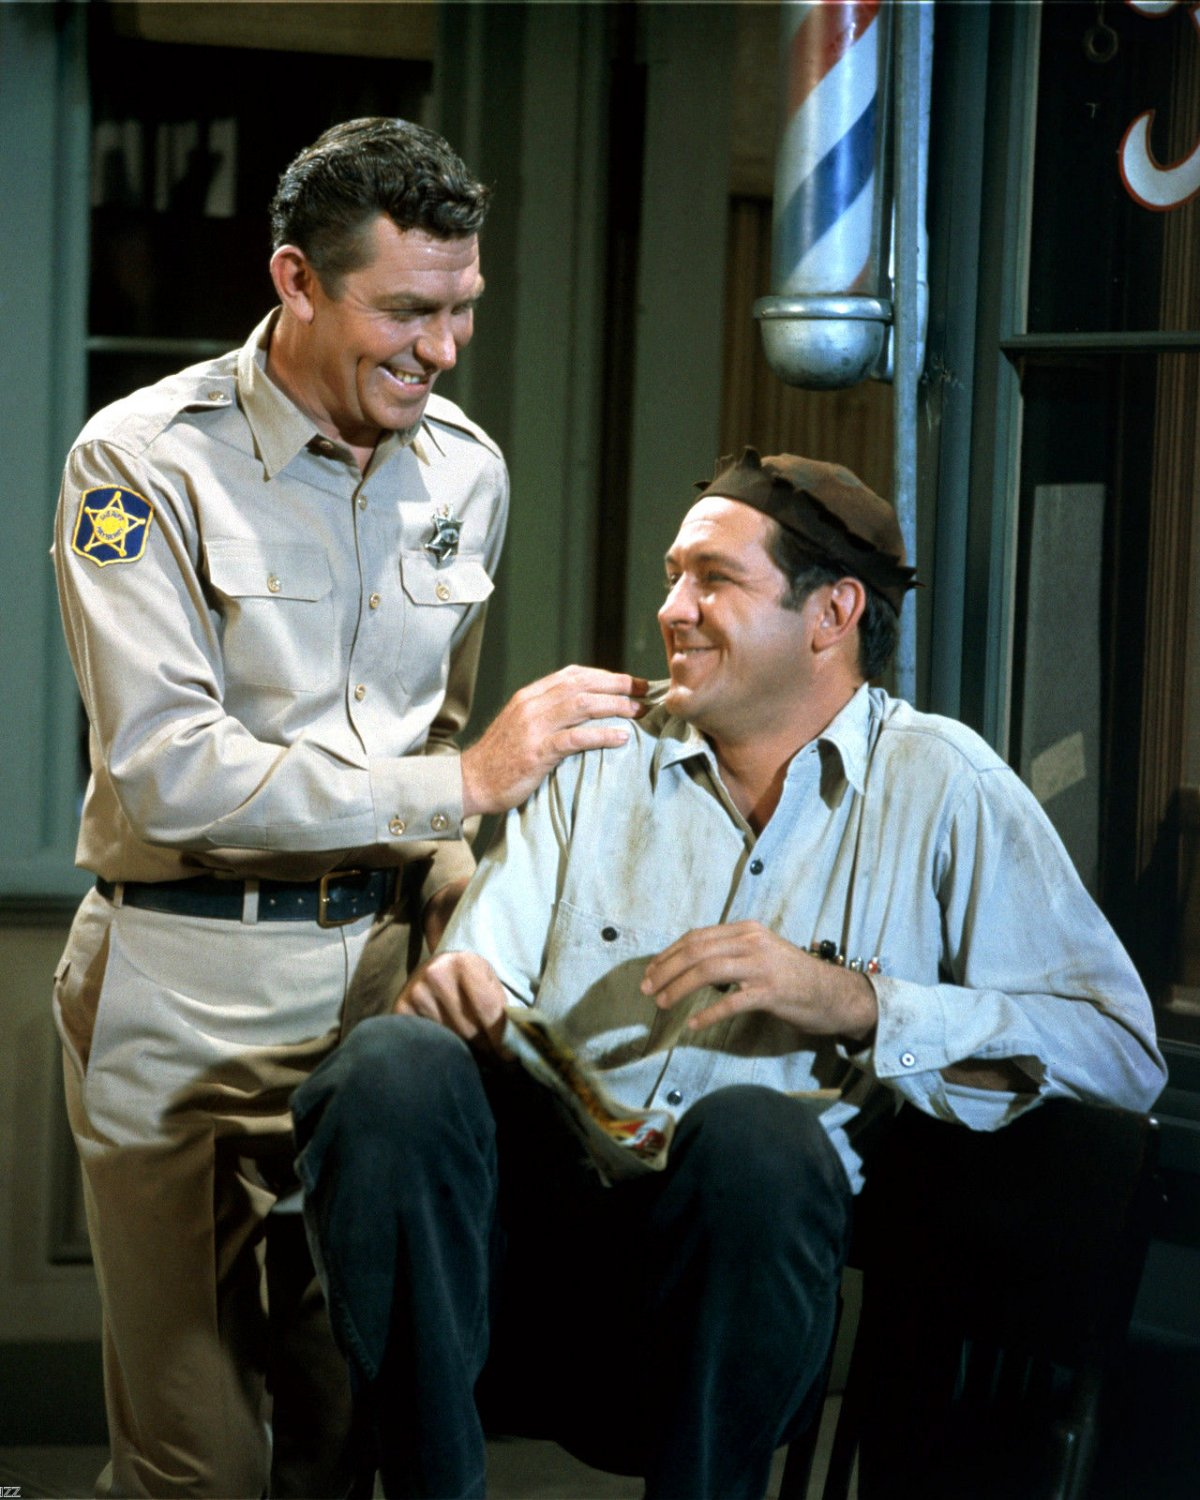 ANDY GRIFFITH & GEORGE LINDSEY IN 'THE ANDY GRIFFITH SHOW' - 8X10 PHOTO (AZ-044)